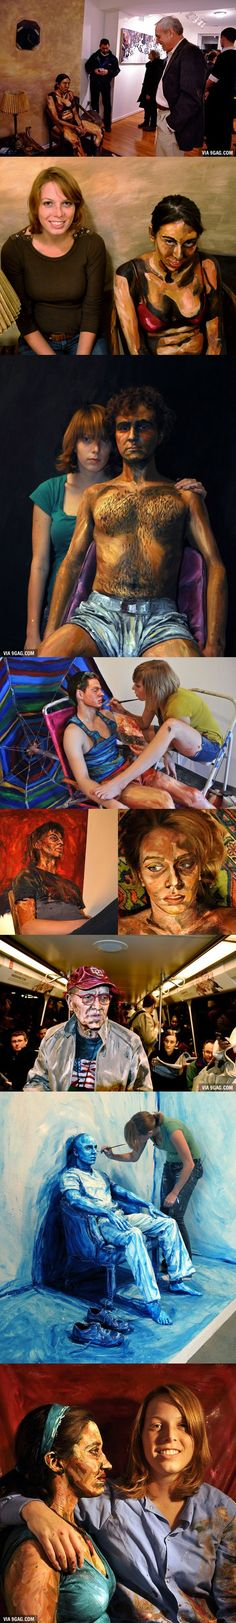 Using humans as canvases. Amazing art by Alexa Meade